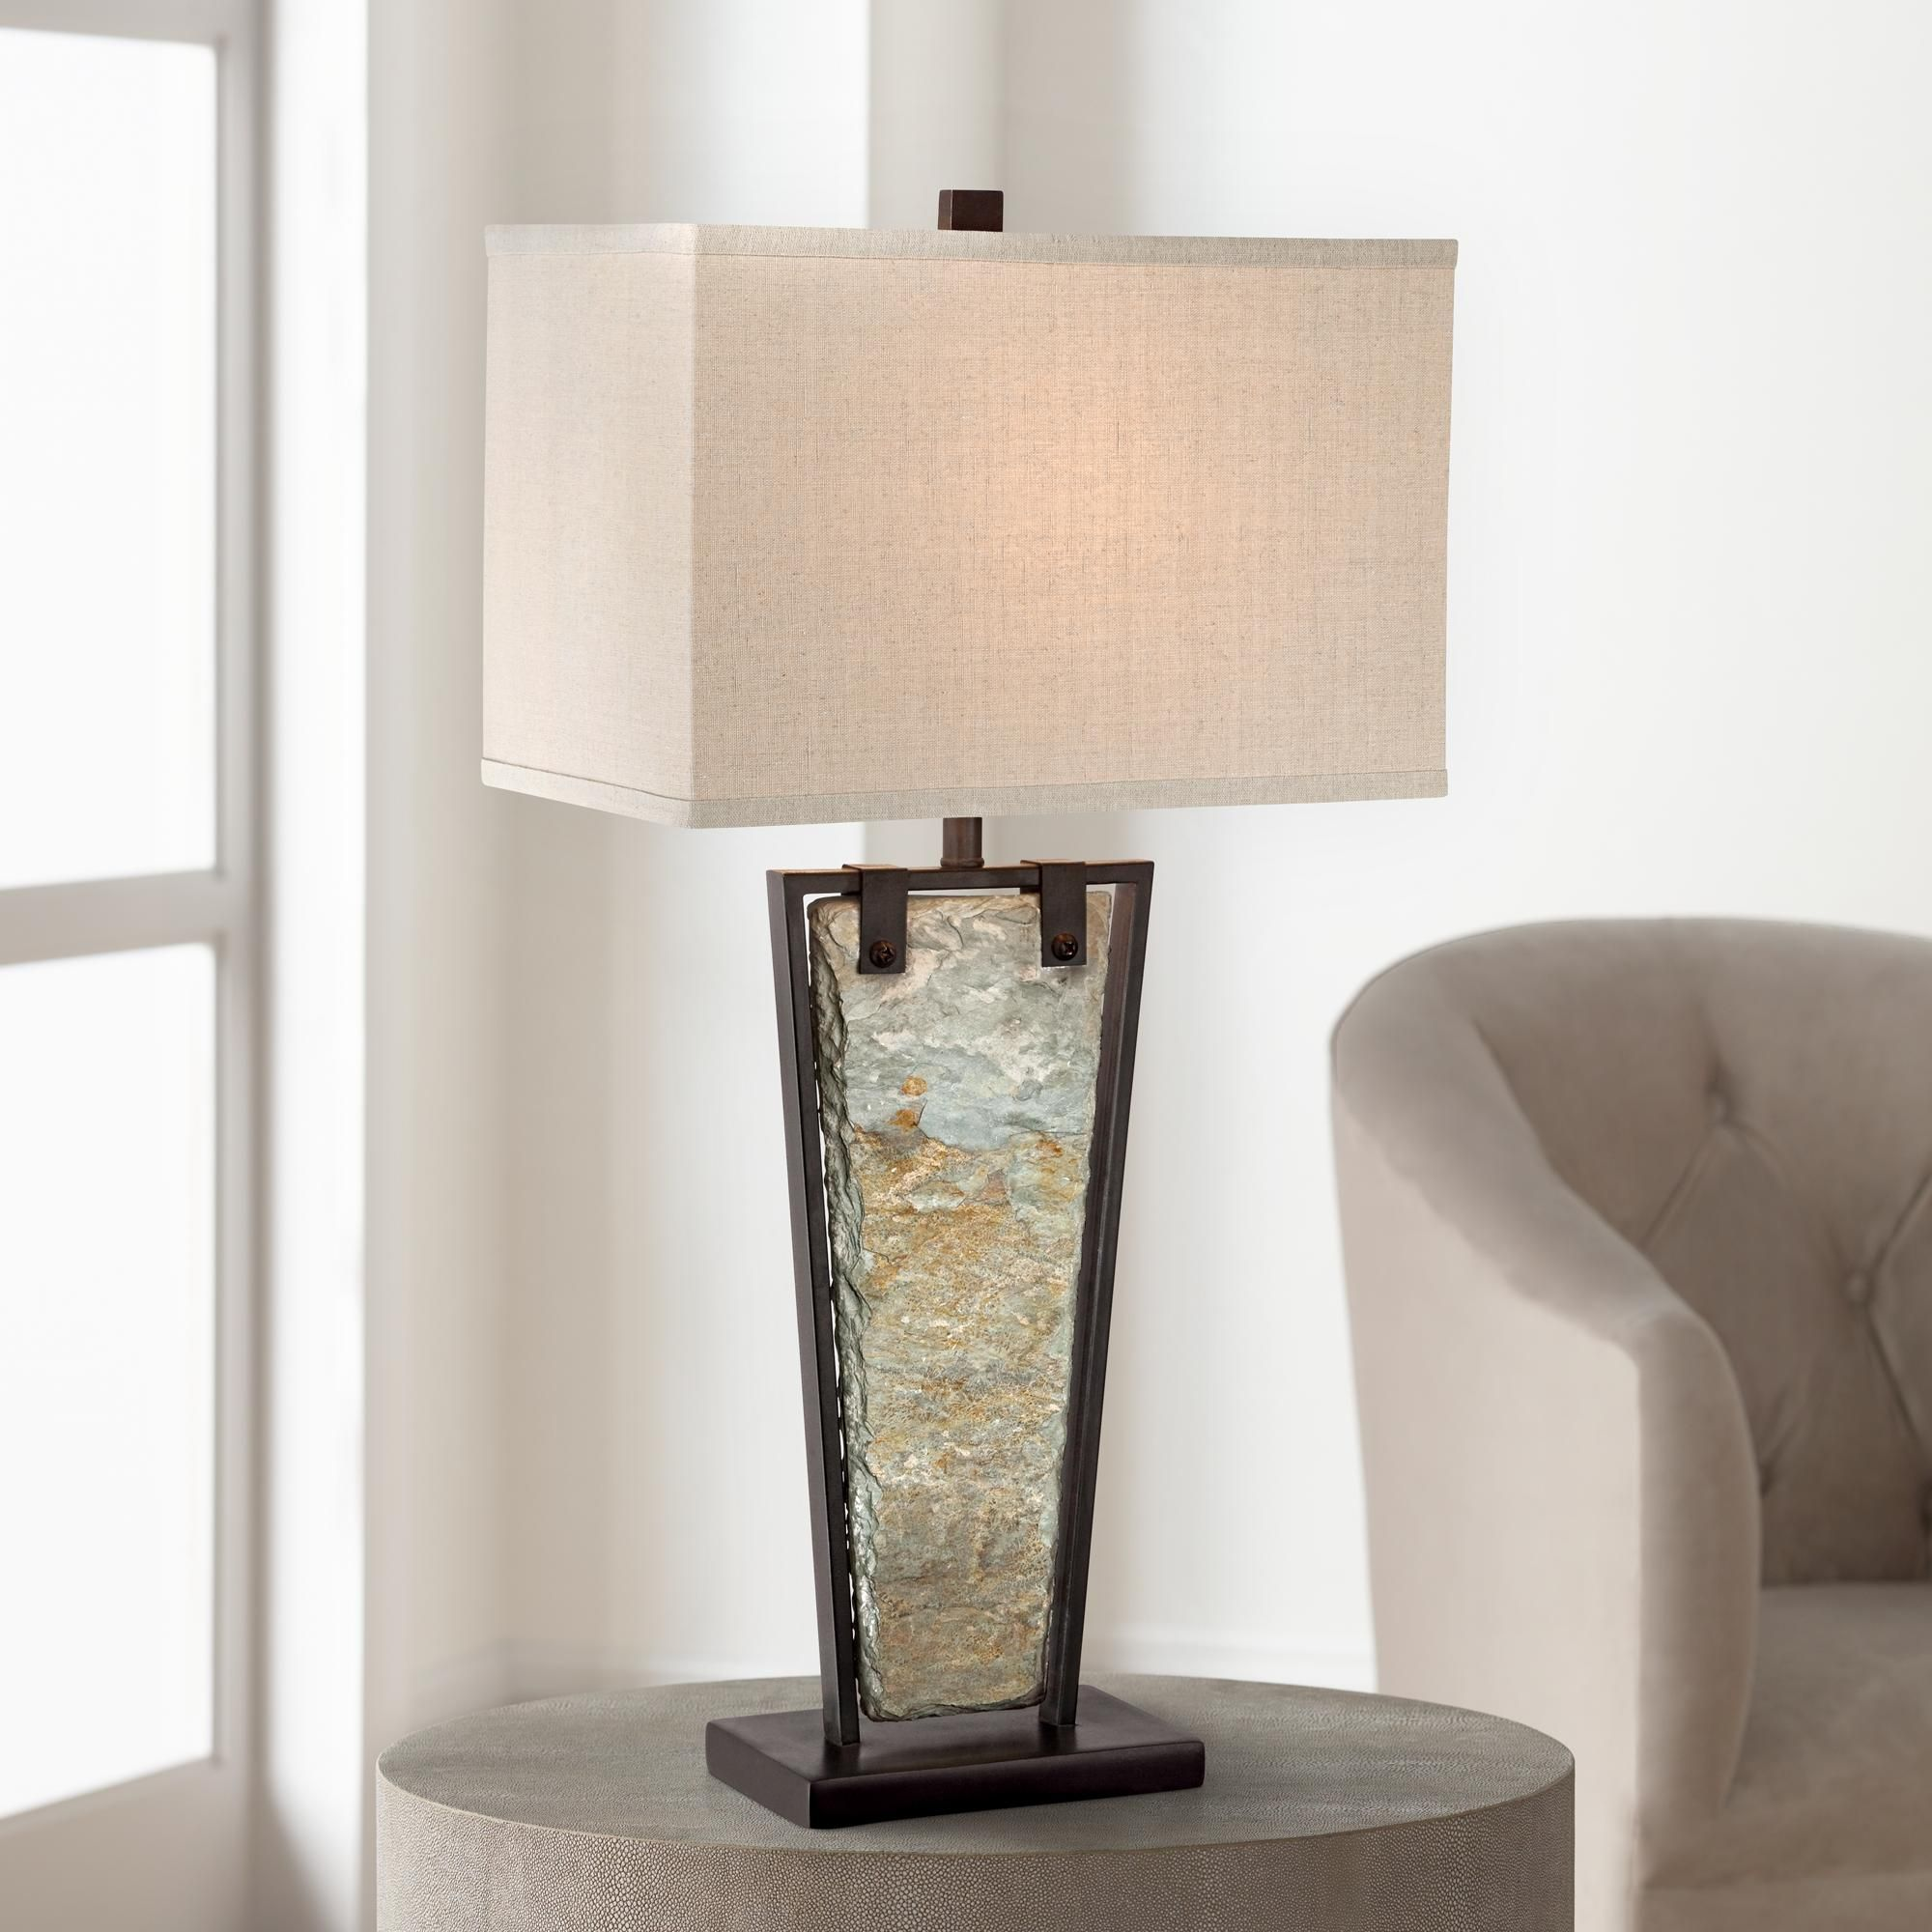 Zion Tapered Slate Table Lamp By Franklin Iron Works Table Lamp